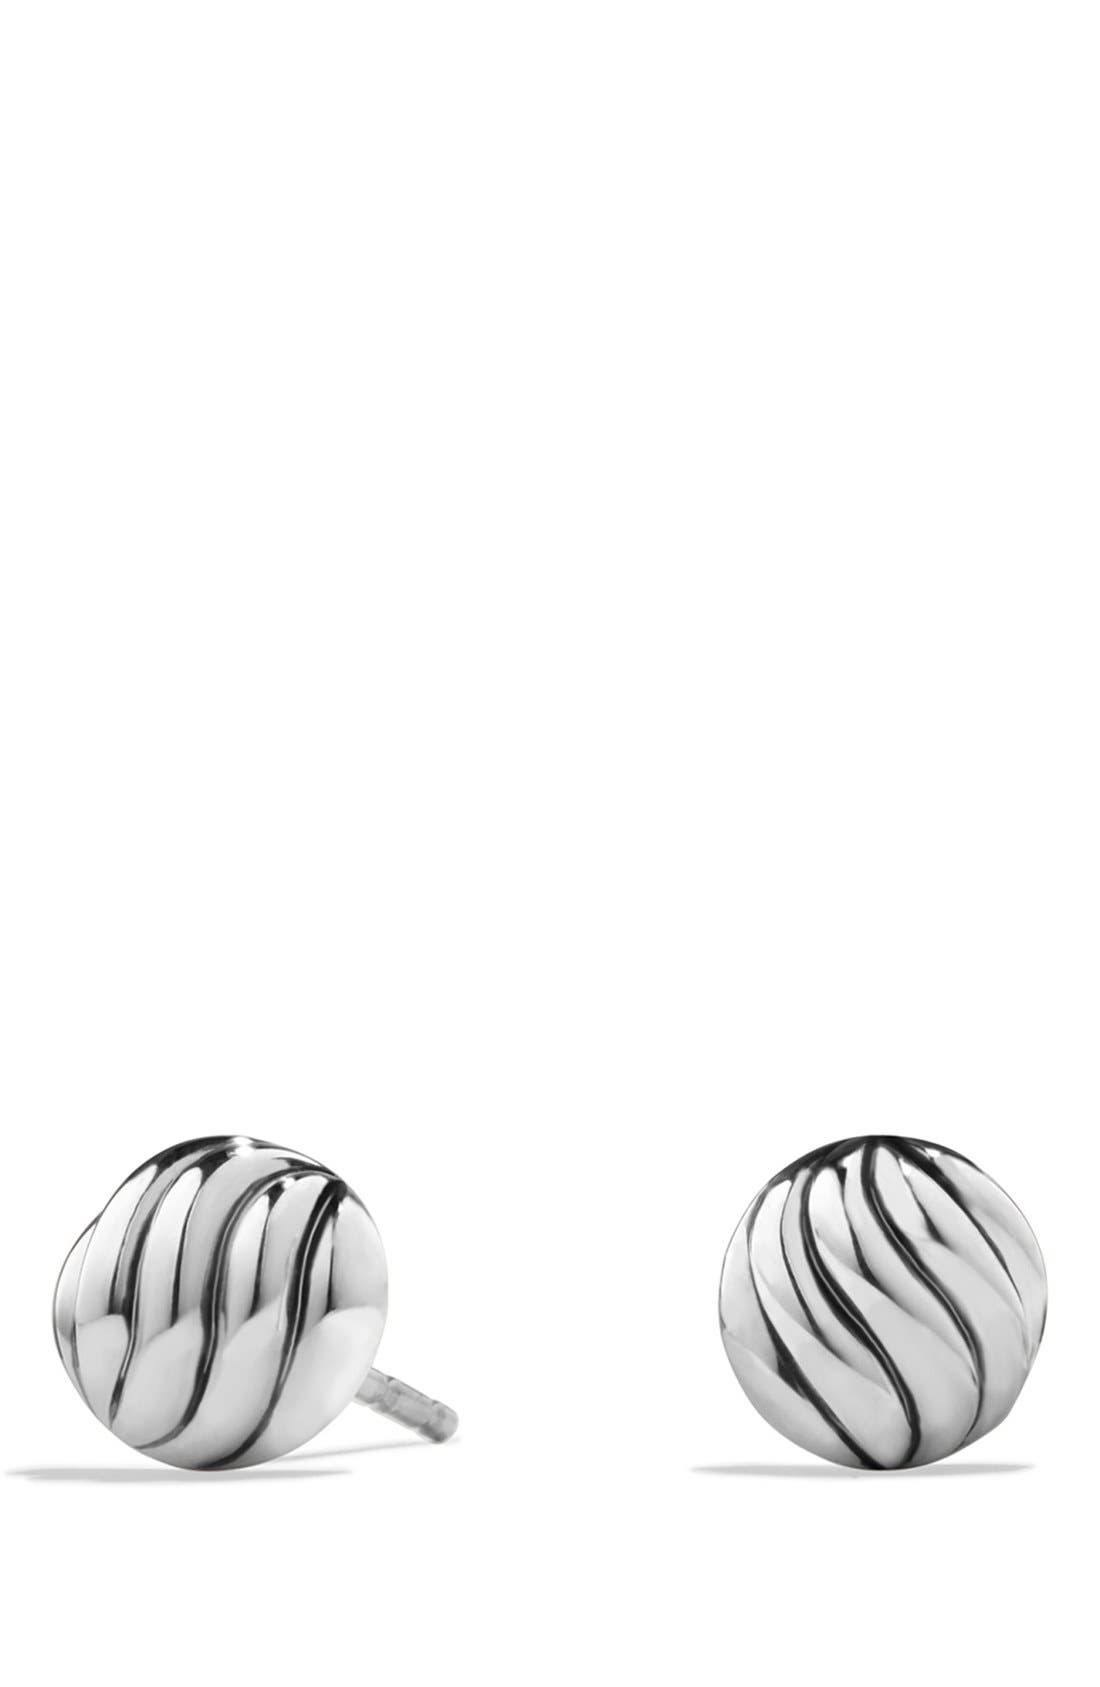 DAVID YURMAN 'Sculpted Cable' Stud Earrings, Main, color, SILVER